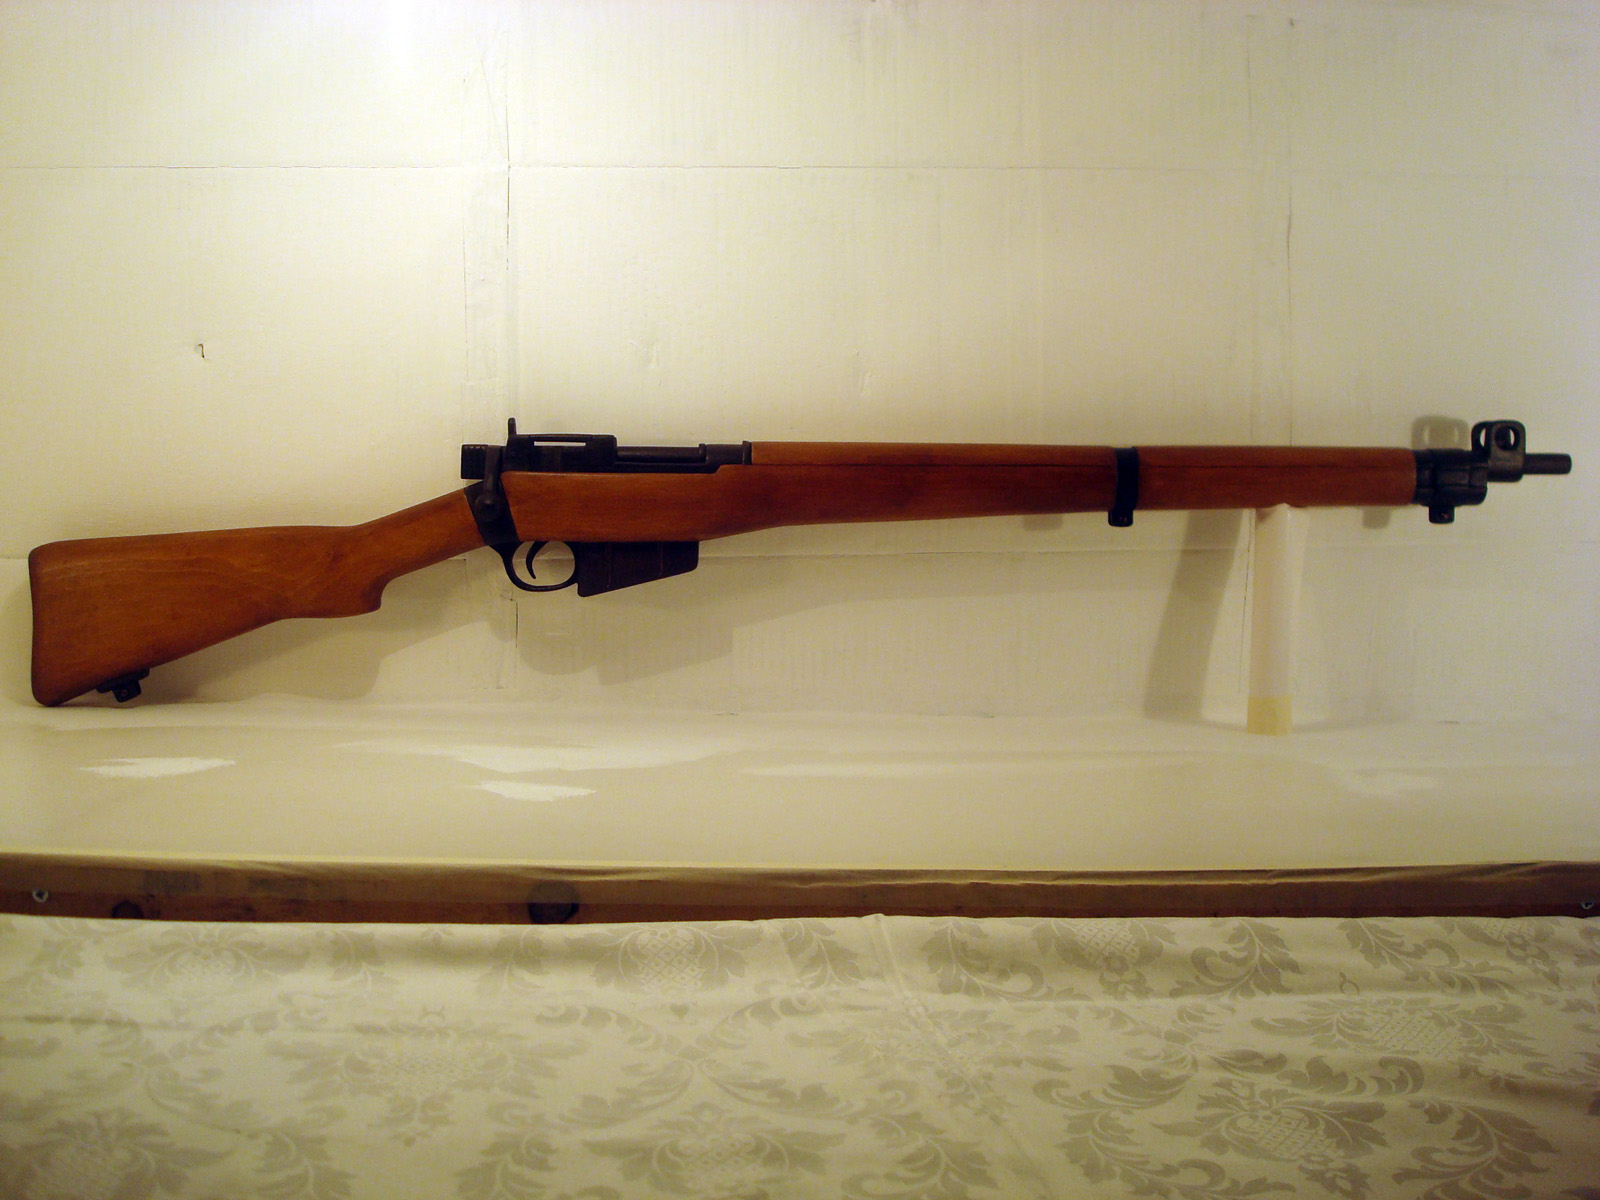 A Lee Enfield replica, made by Mr. Ilias Katsaros